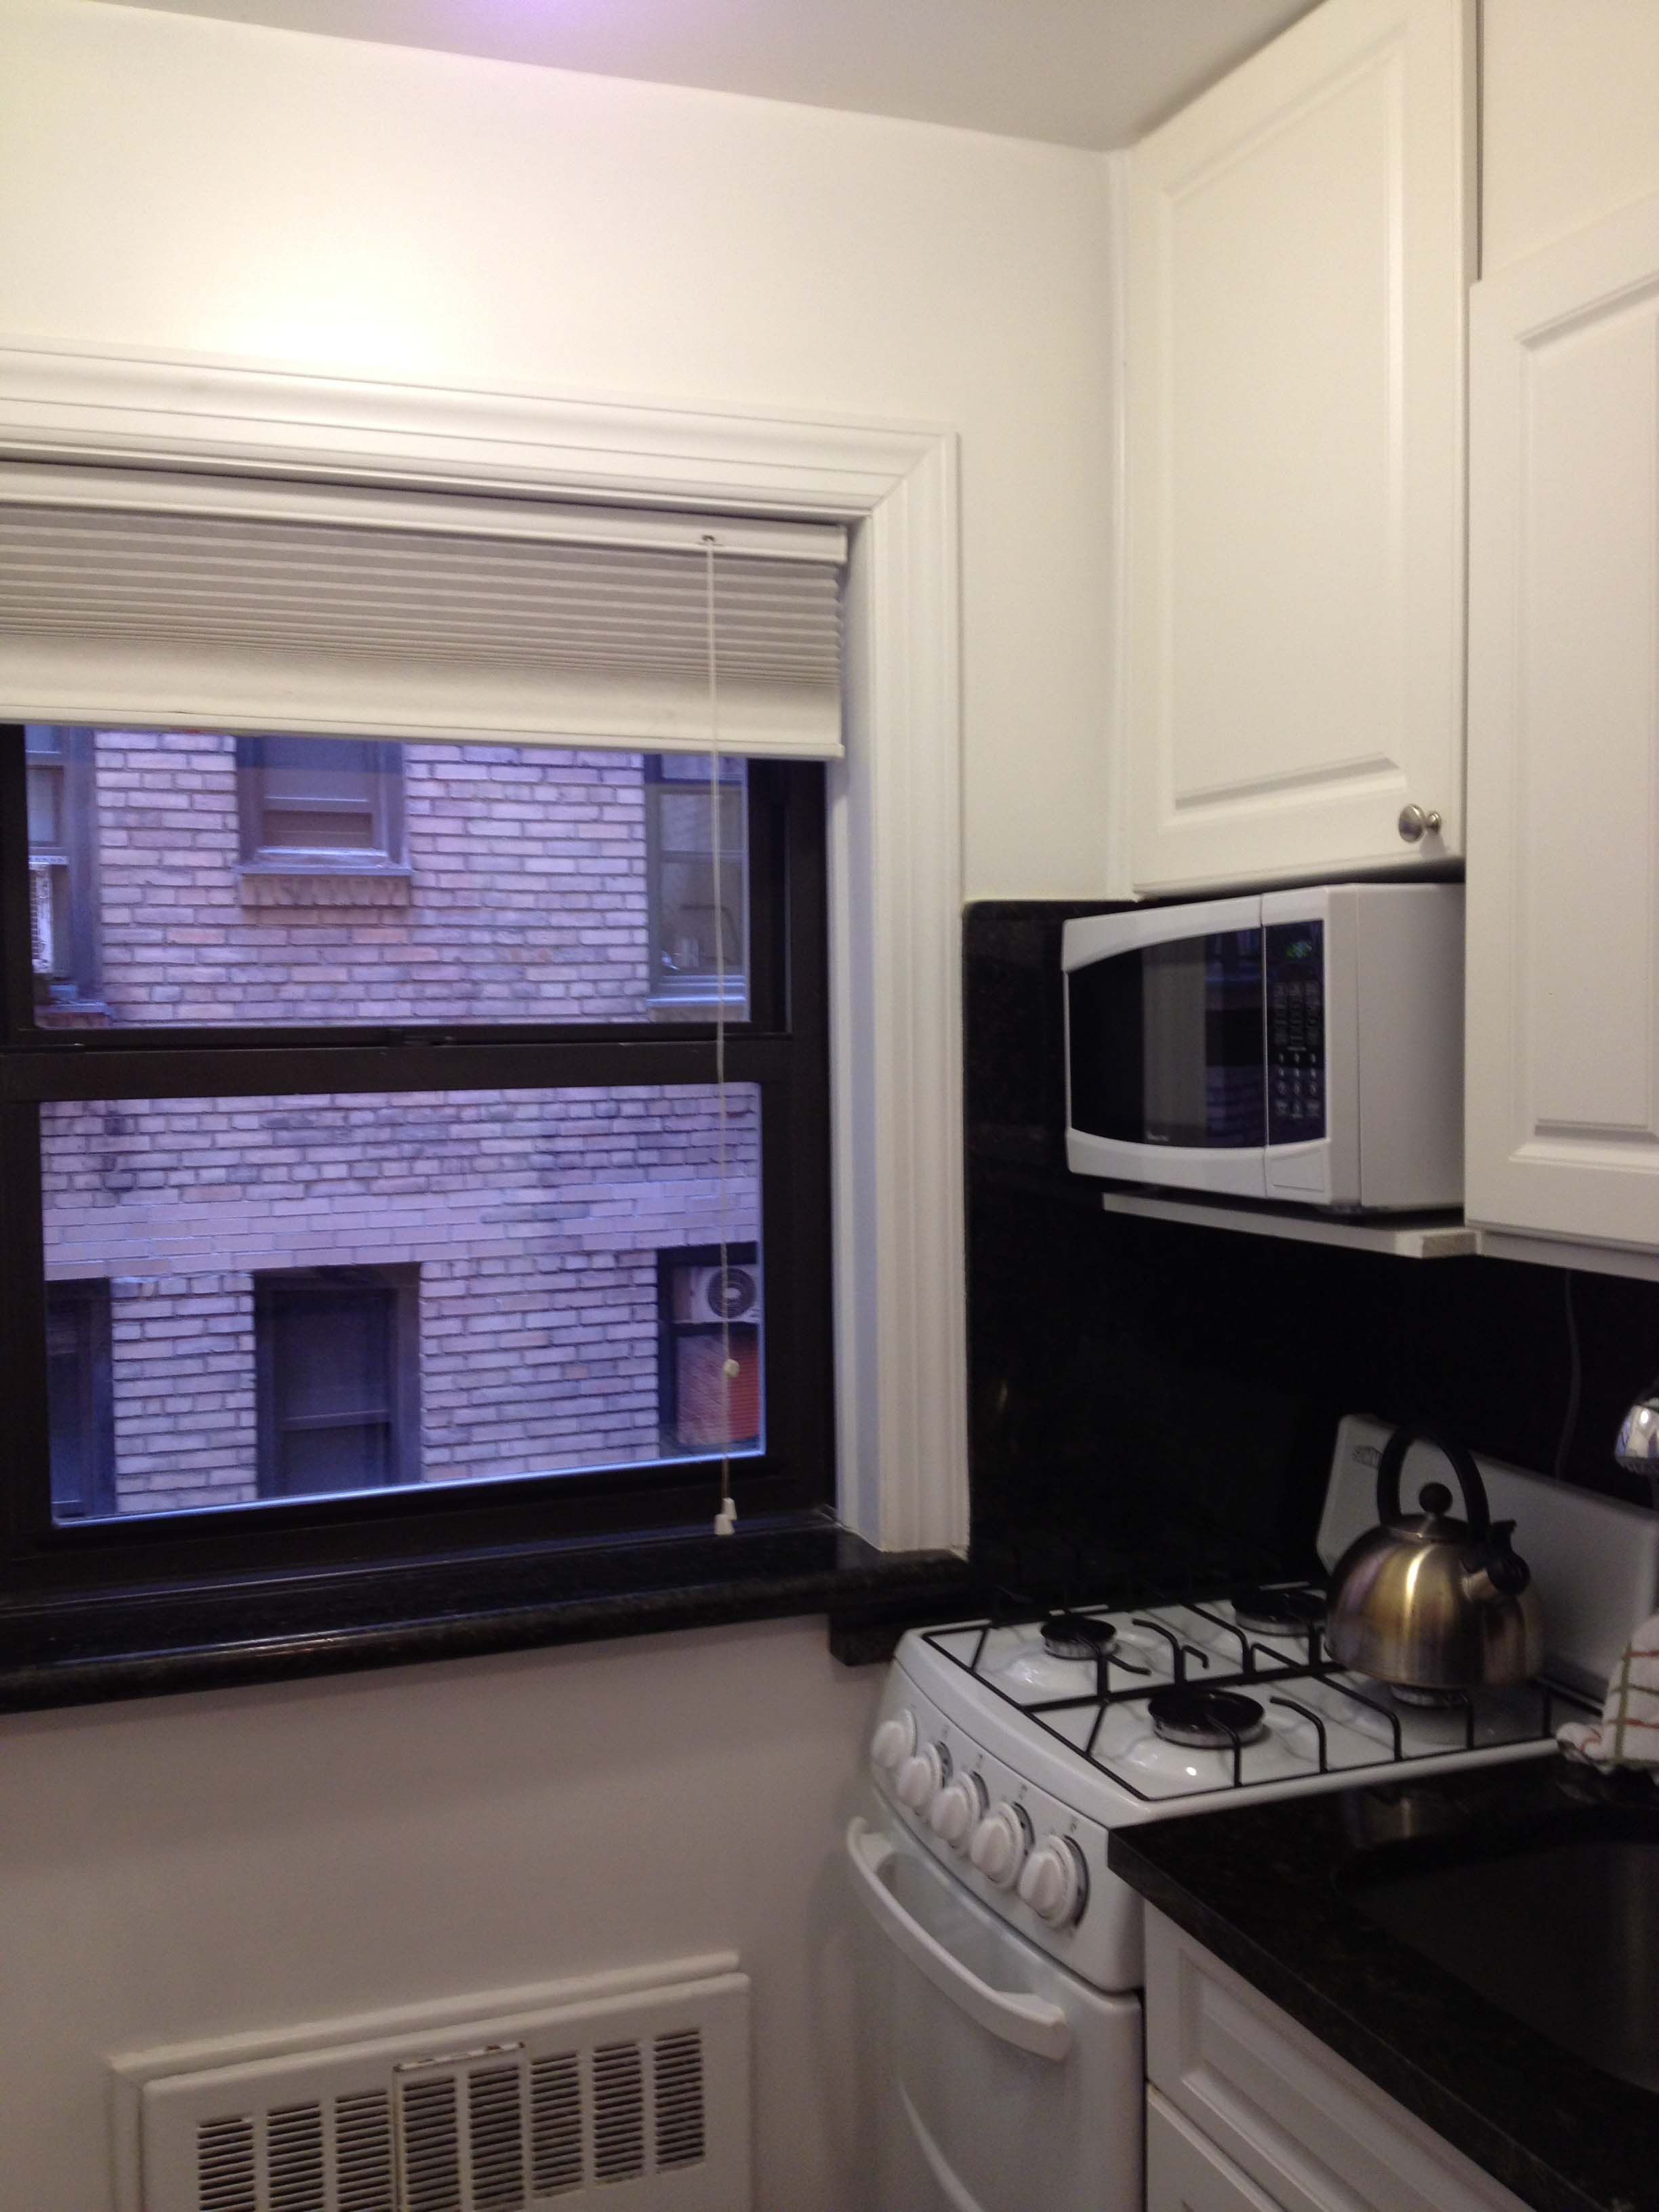 rent find ullyyu for rooms roommates nyc manhattan in room